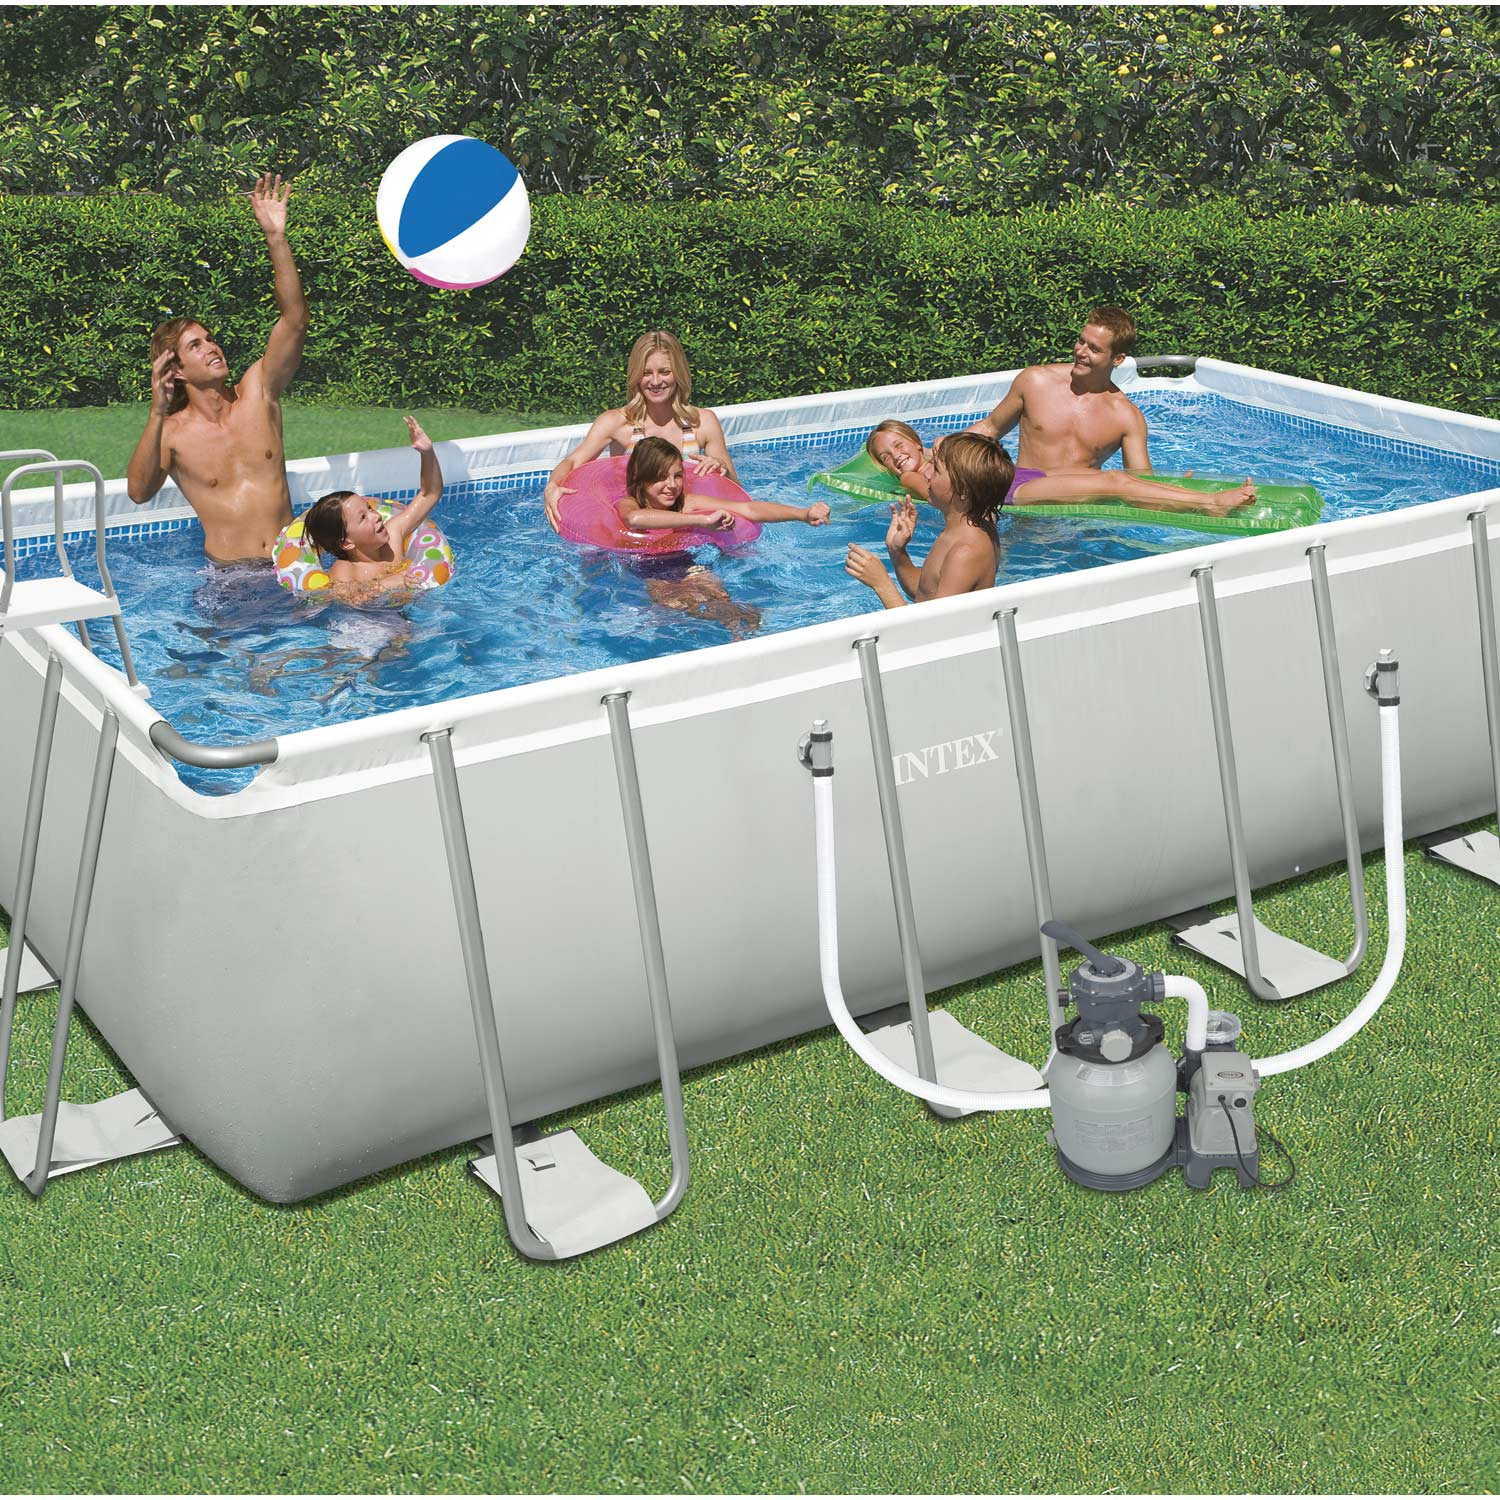 Piscine hors sol autoportante tubulaire ultra silver intex for Piscine hors sol 8x4